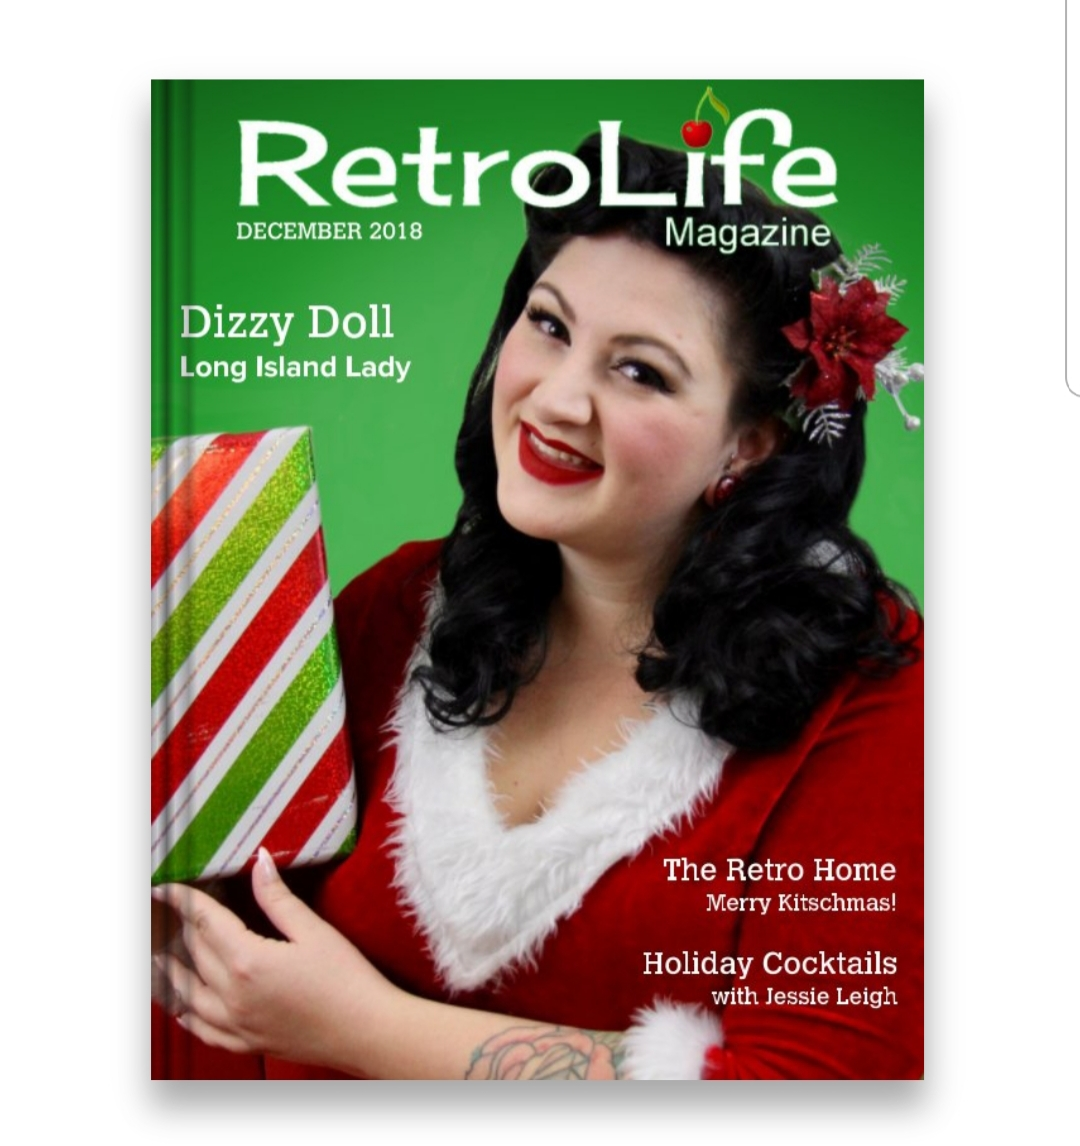 Retrolife_Magazine_cover_D&Jphotography.jpg